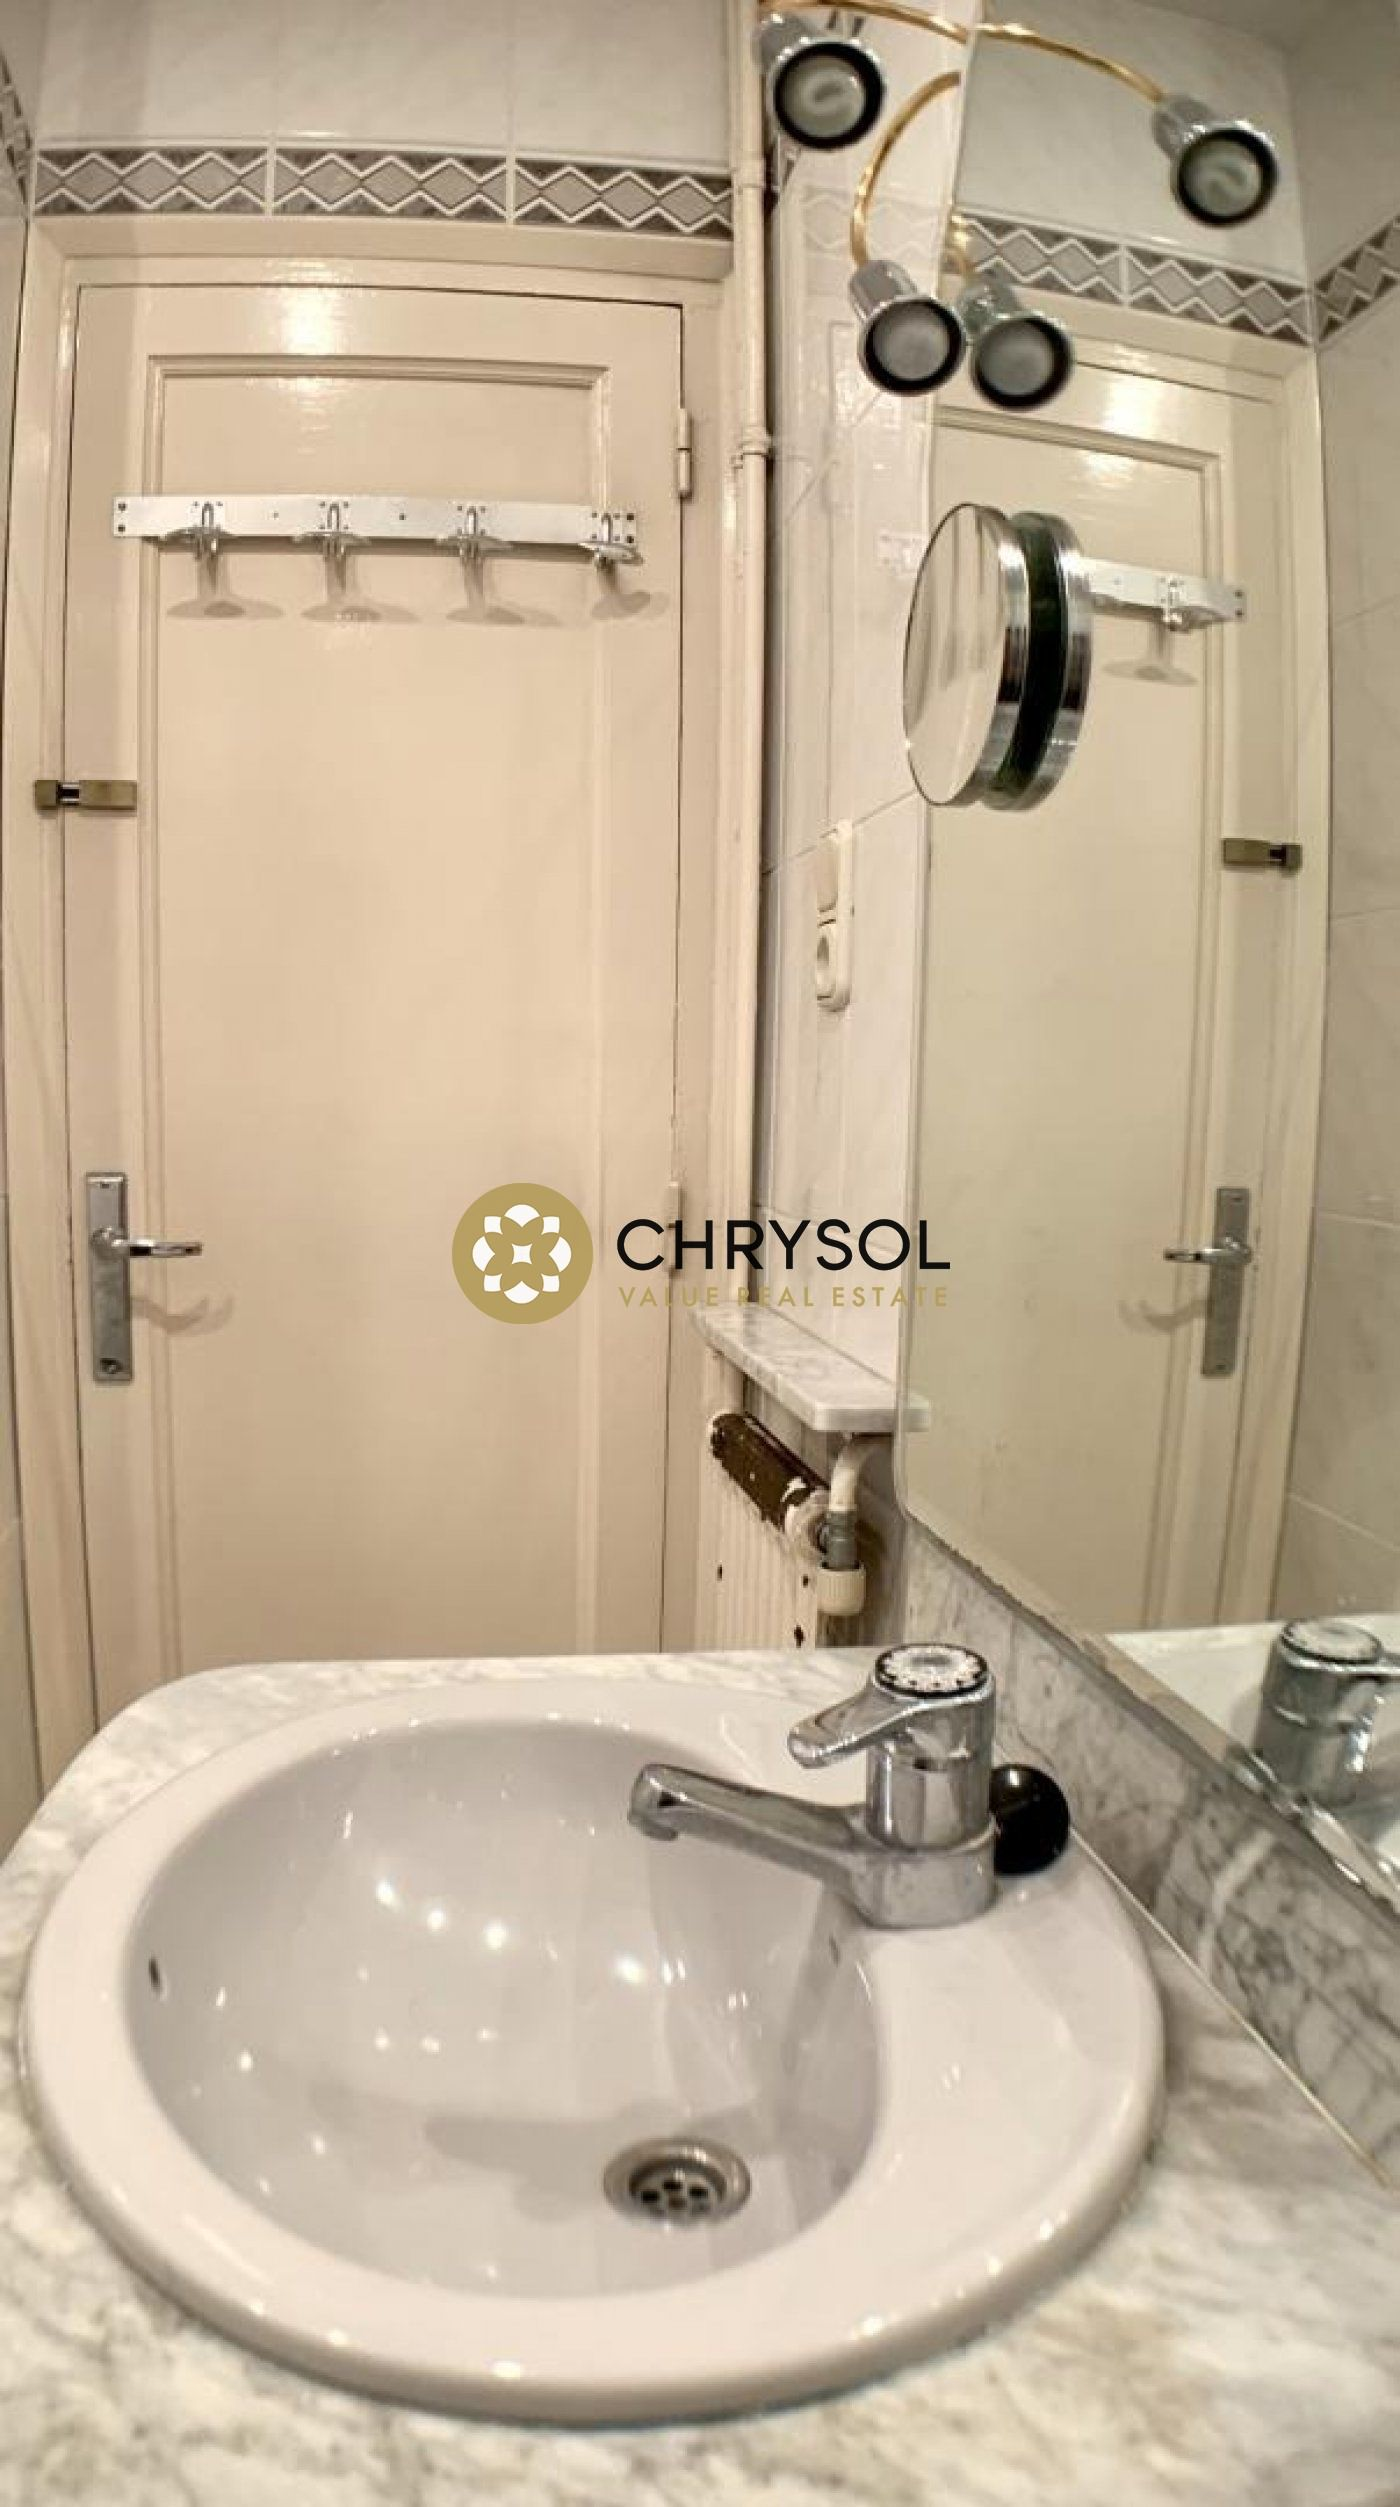 Photogallery - 8 - Chrysol Value